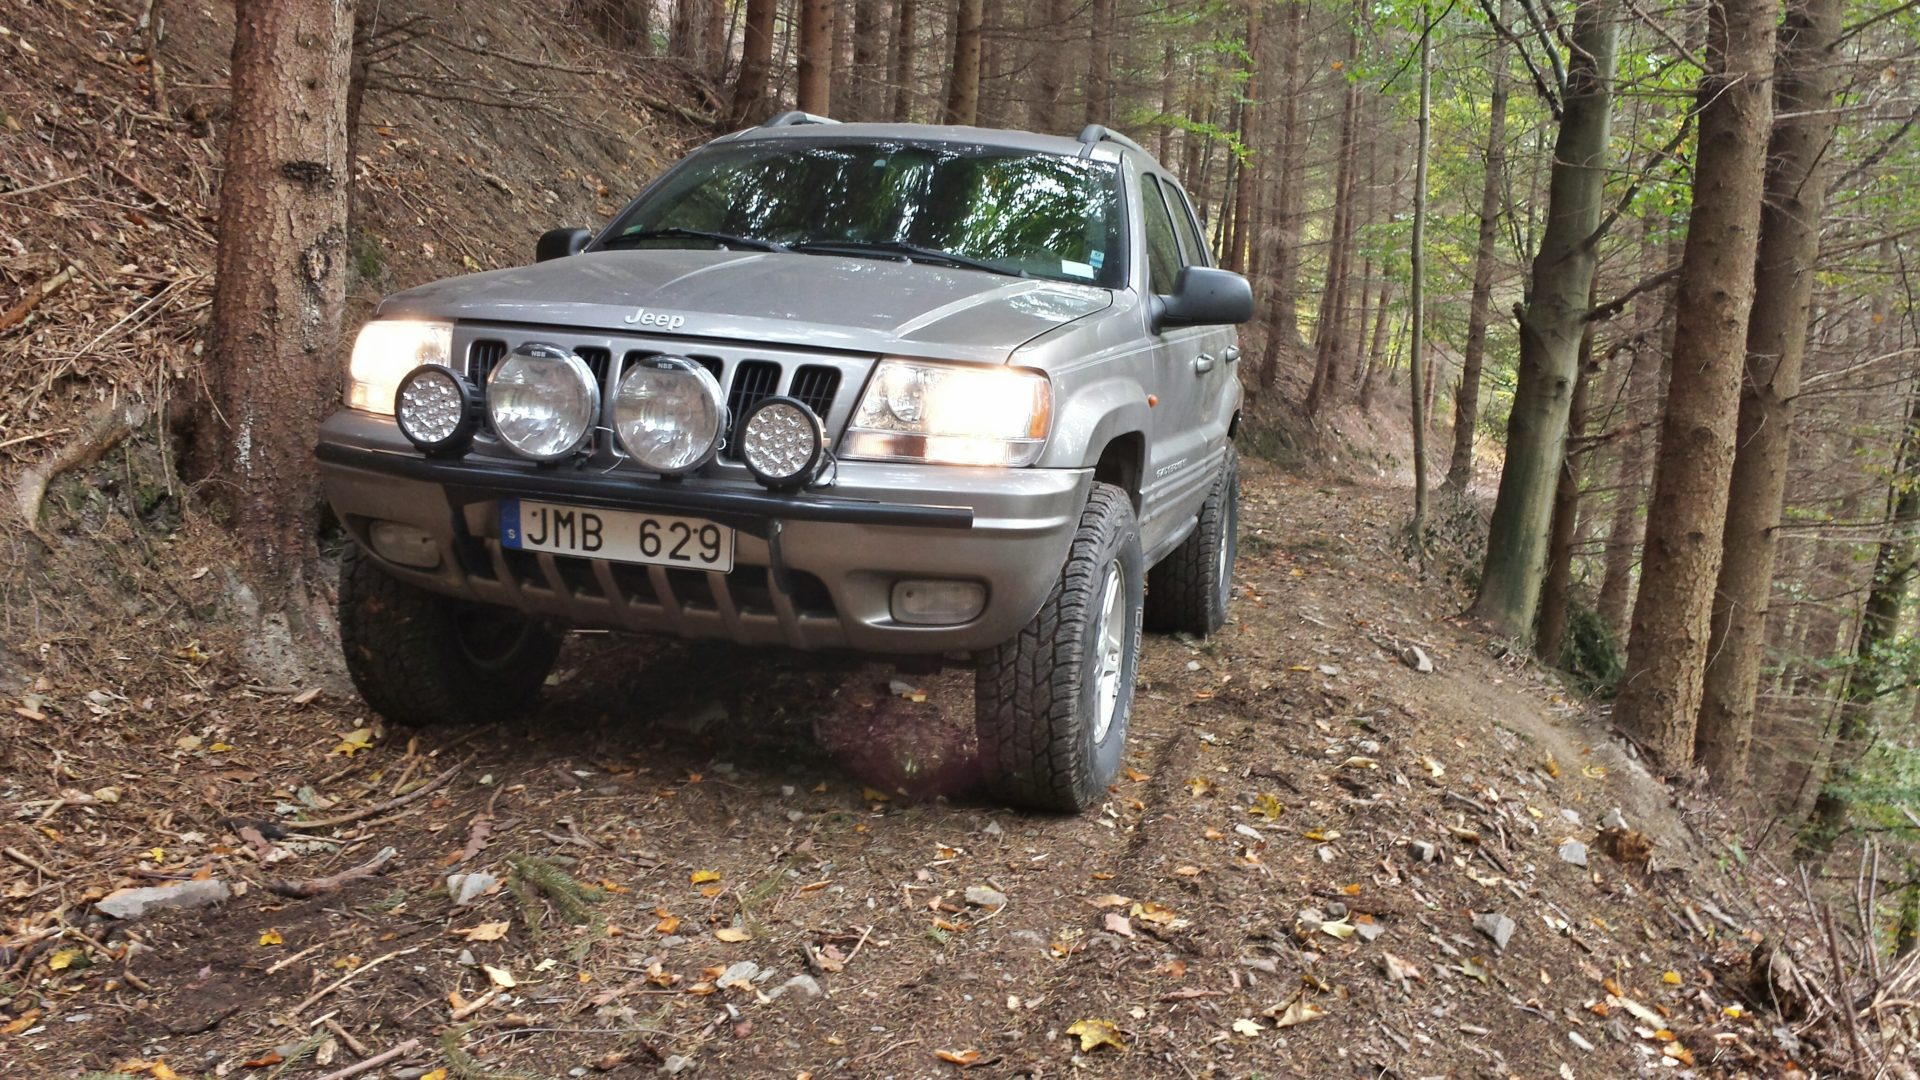 Hqdefault as well Hqdefault further Hqdefault as well Jeep Hood Star also Maxresdefault. on jeep grand cherokee off road